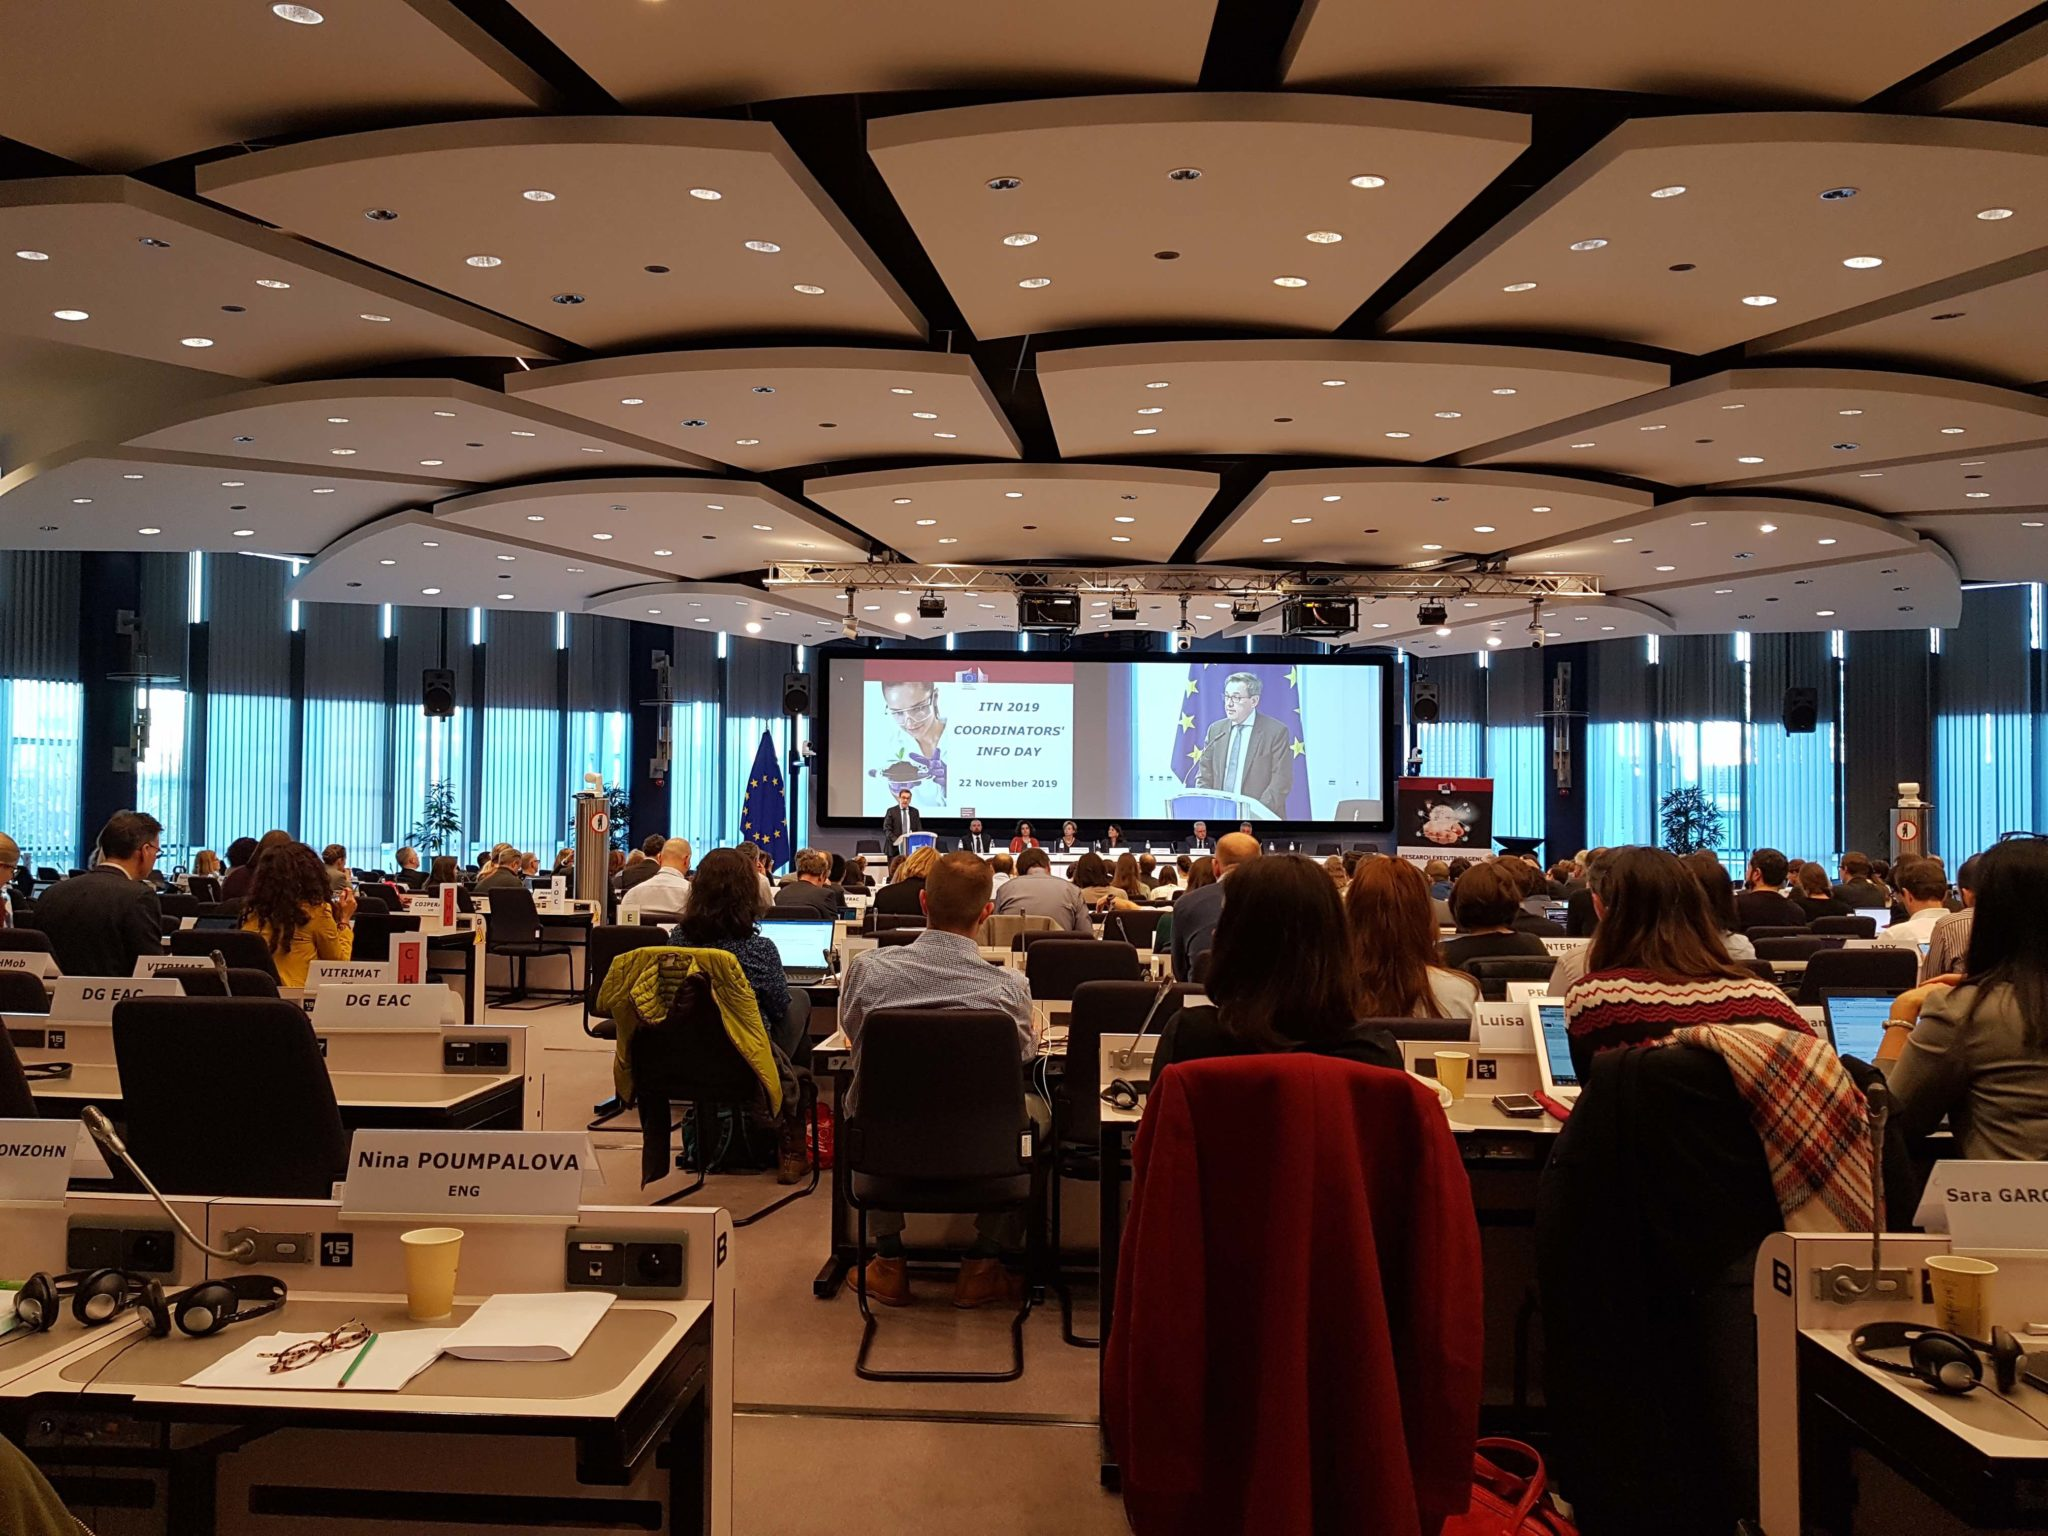 General view of the room at the at the H2020 MSCA ITN Coordinators meeting,